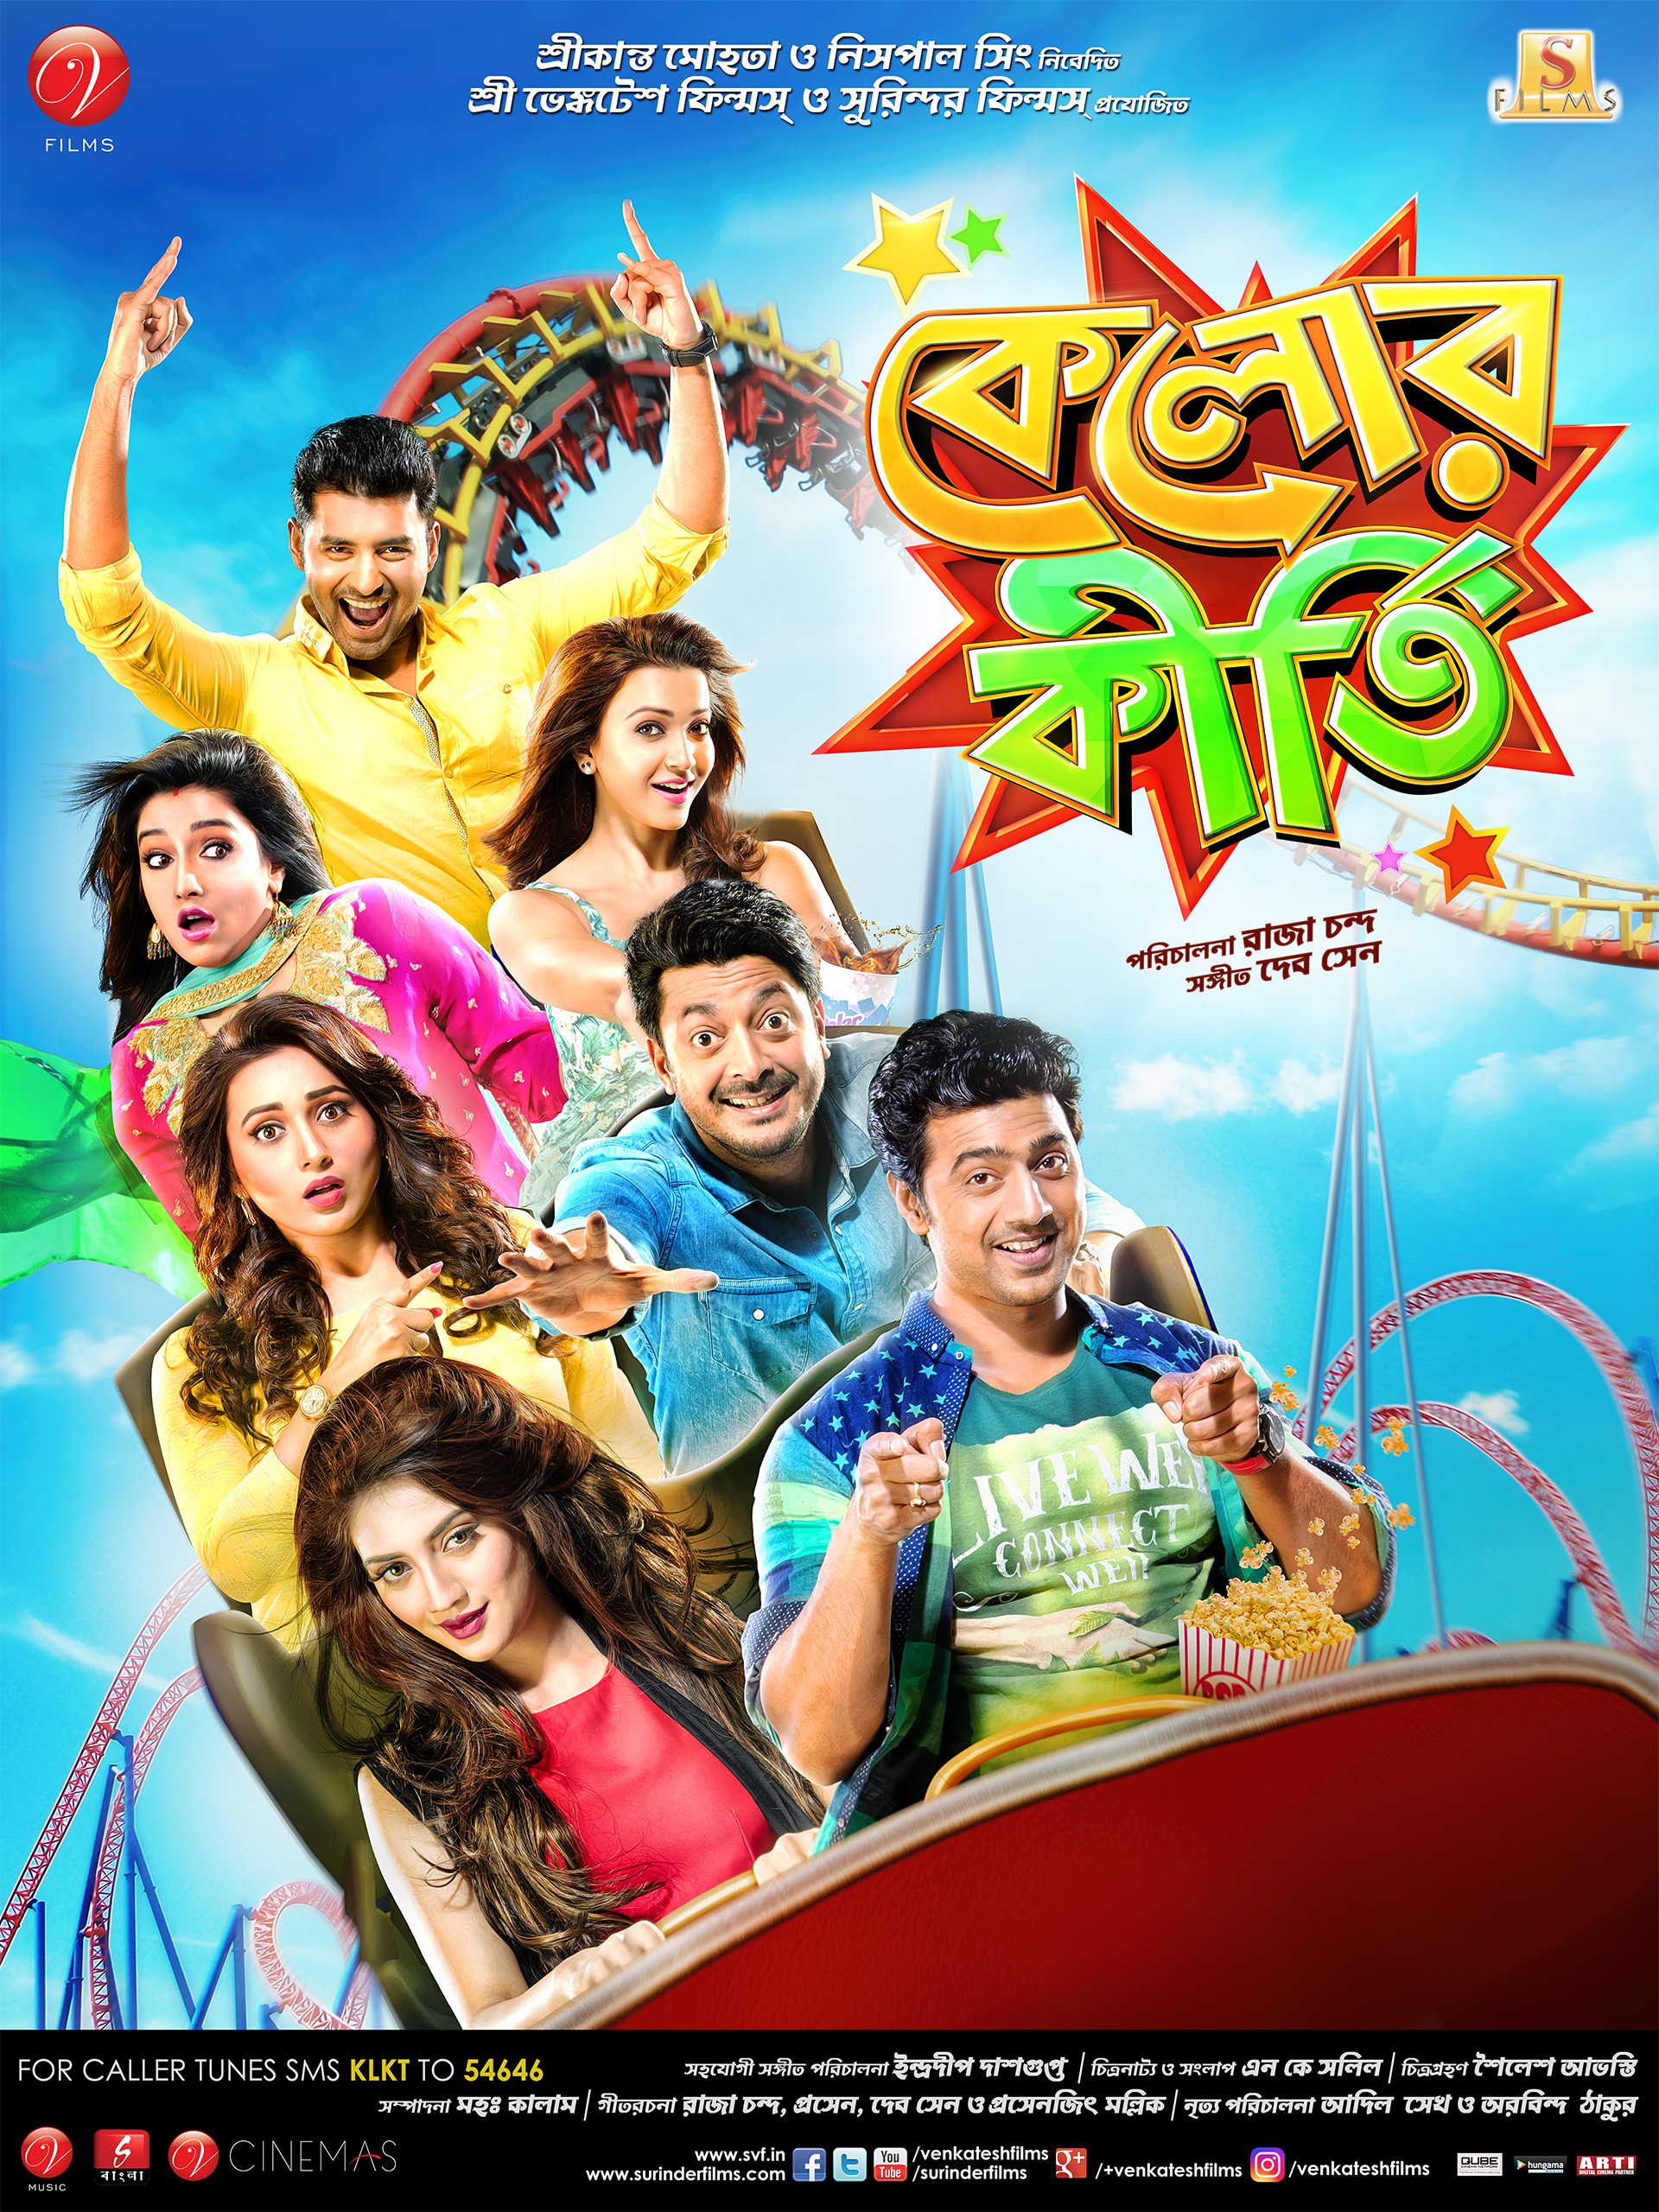 Kelor Kirti (2016) Bengali 720p WEB-DL x265 AAC 900MB